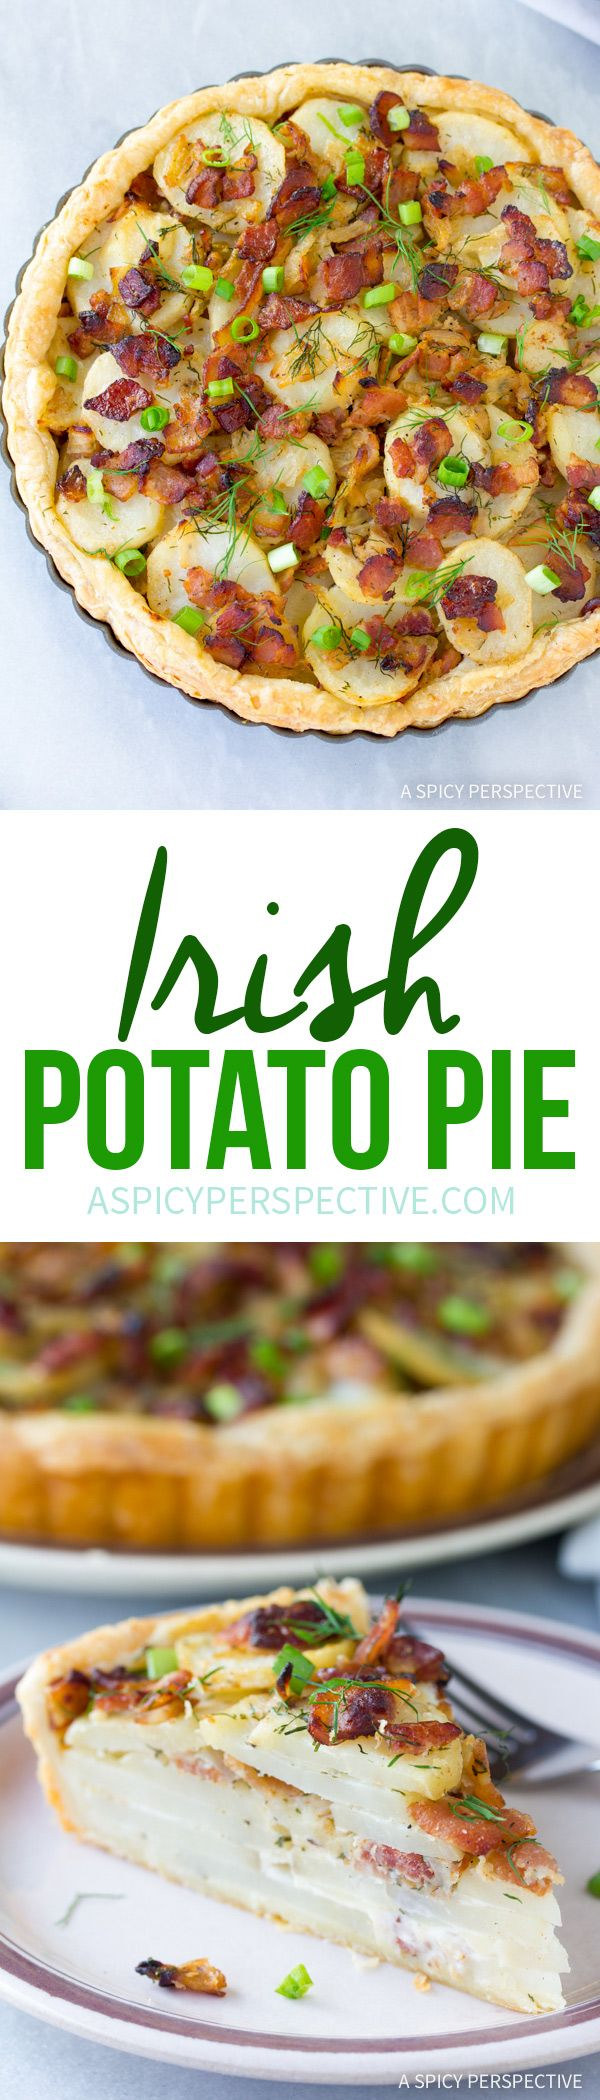 Tantalizing Irish Potato Pie Recipe #saintpatricksday via @spicyperspectiv (I'll make this without a pie crust)